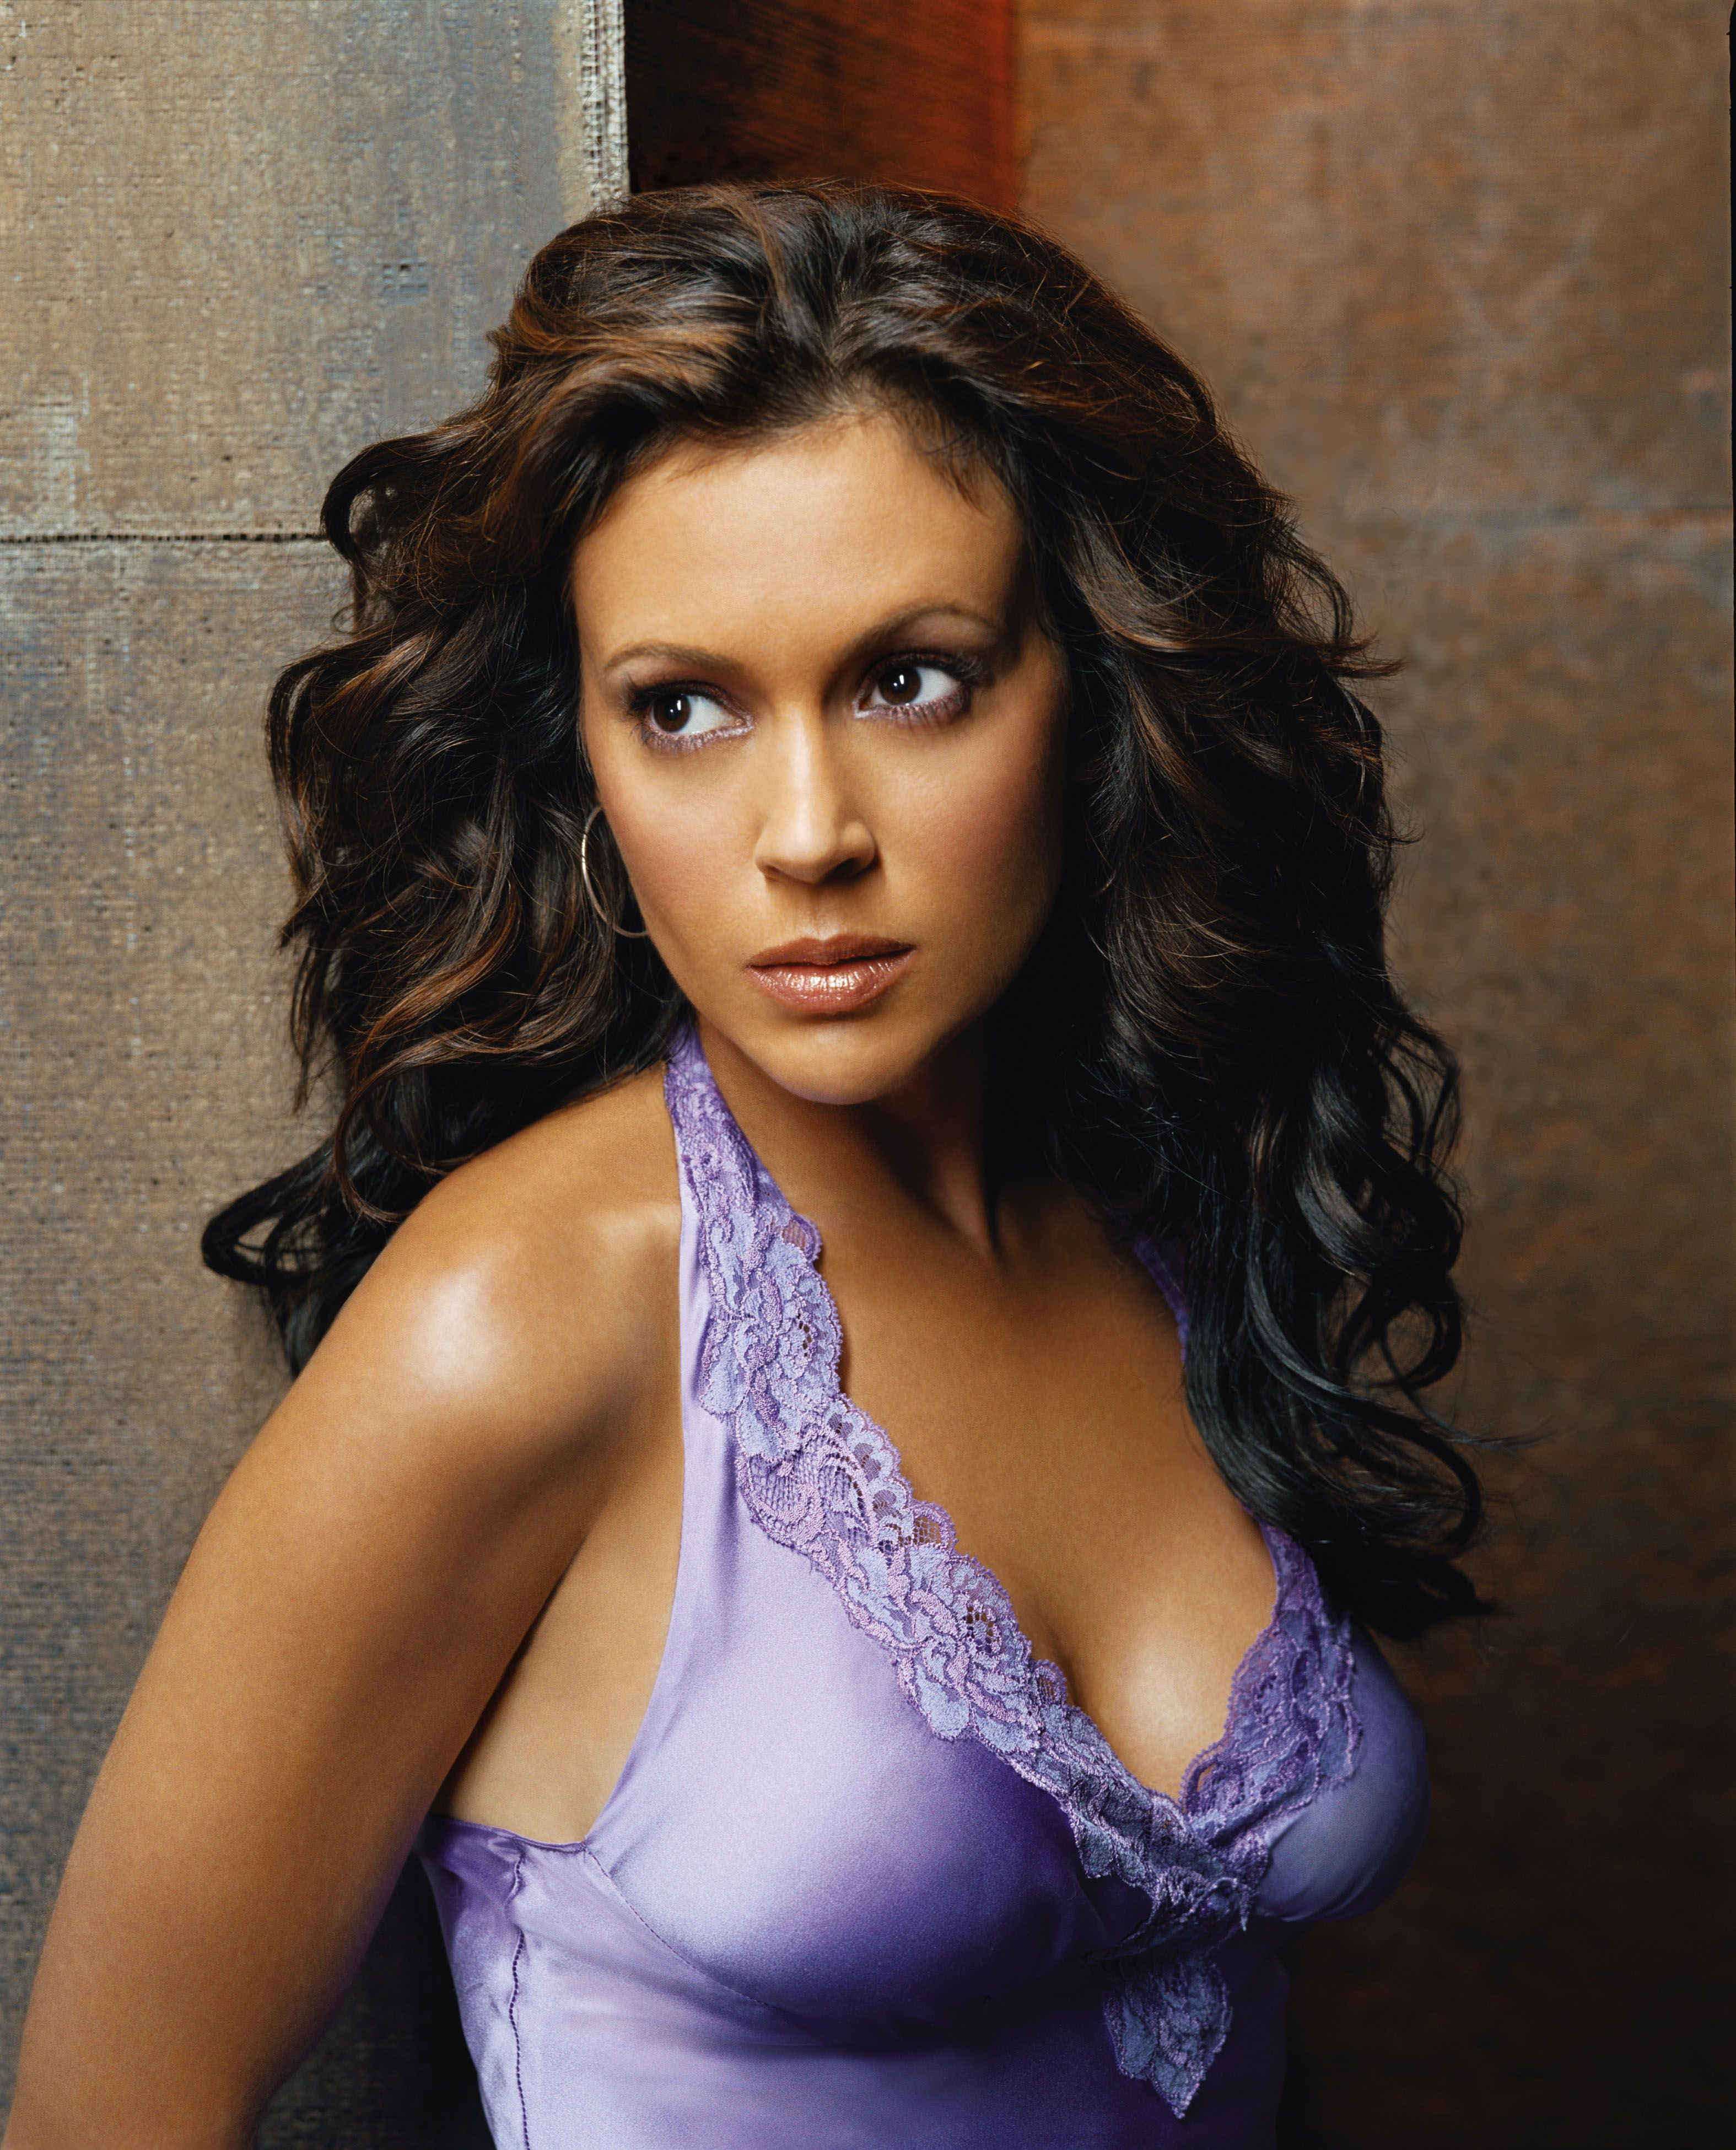 Phoebe Charmed Season 8 Alyssa Milano Hot Alyssa Milano